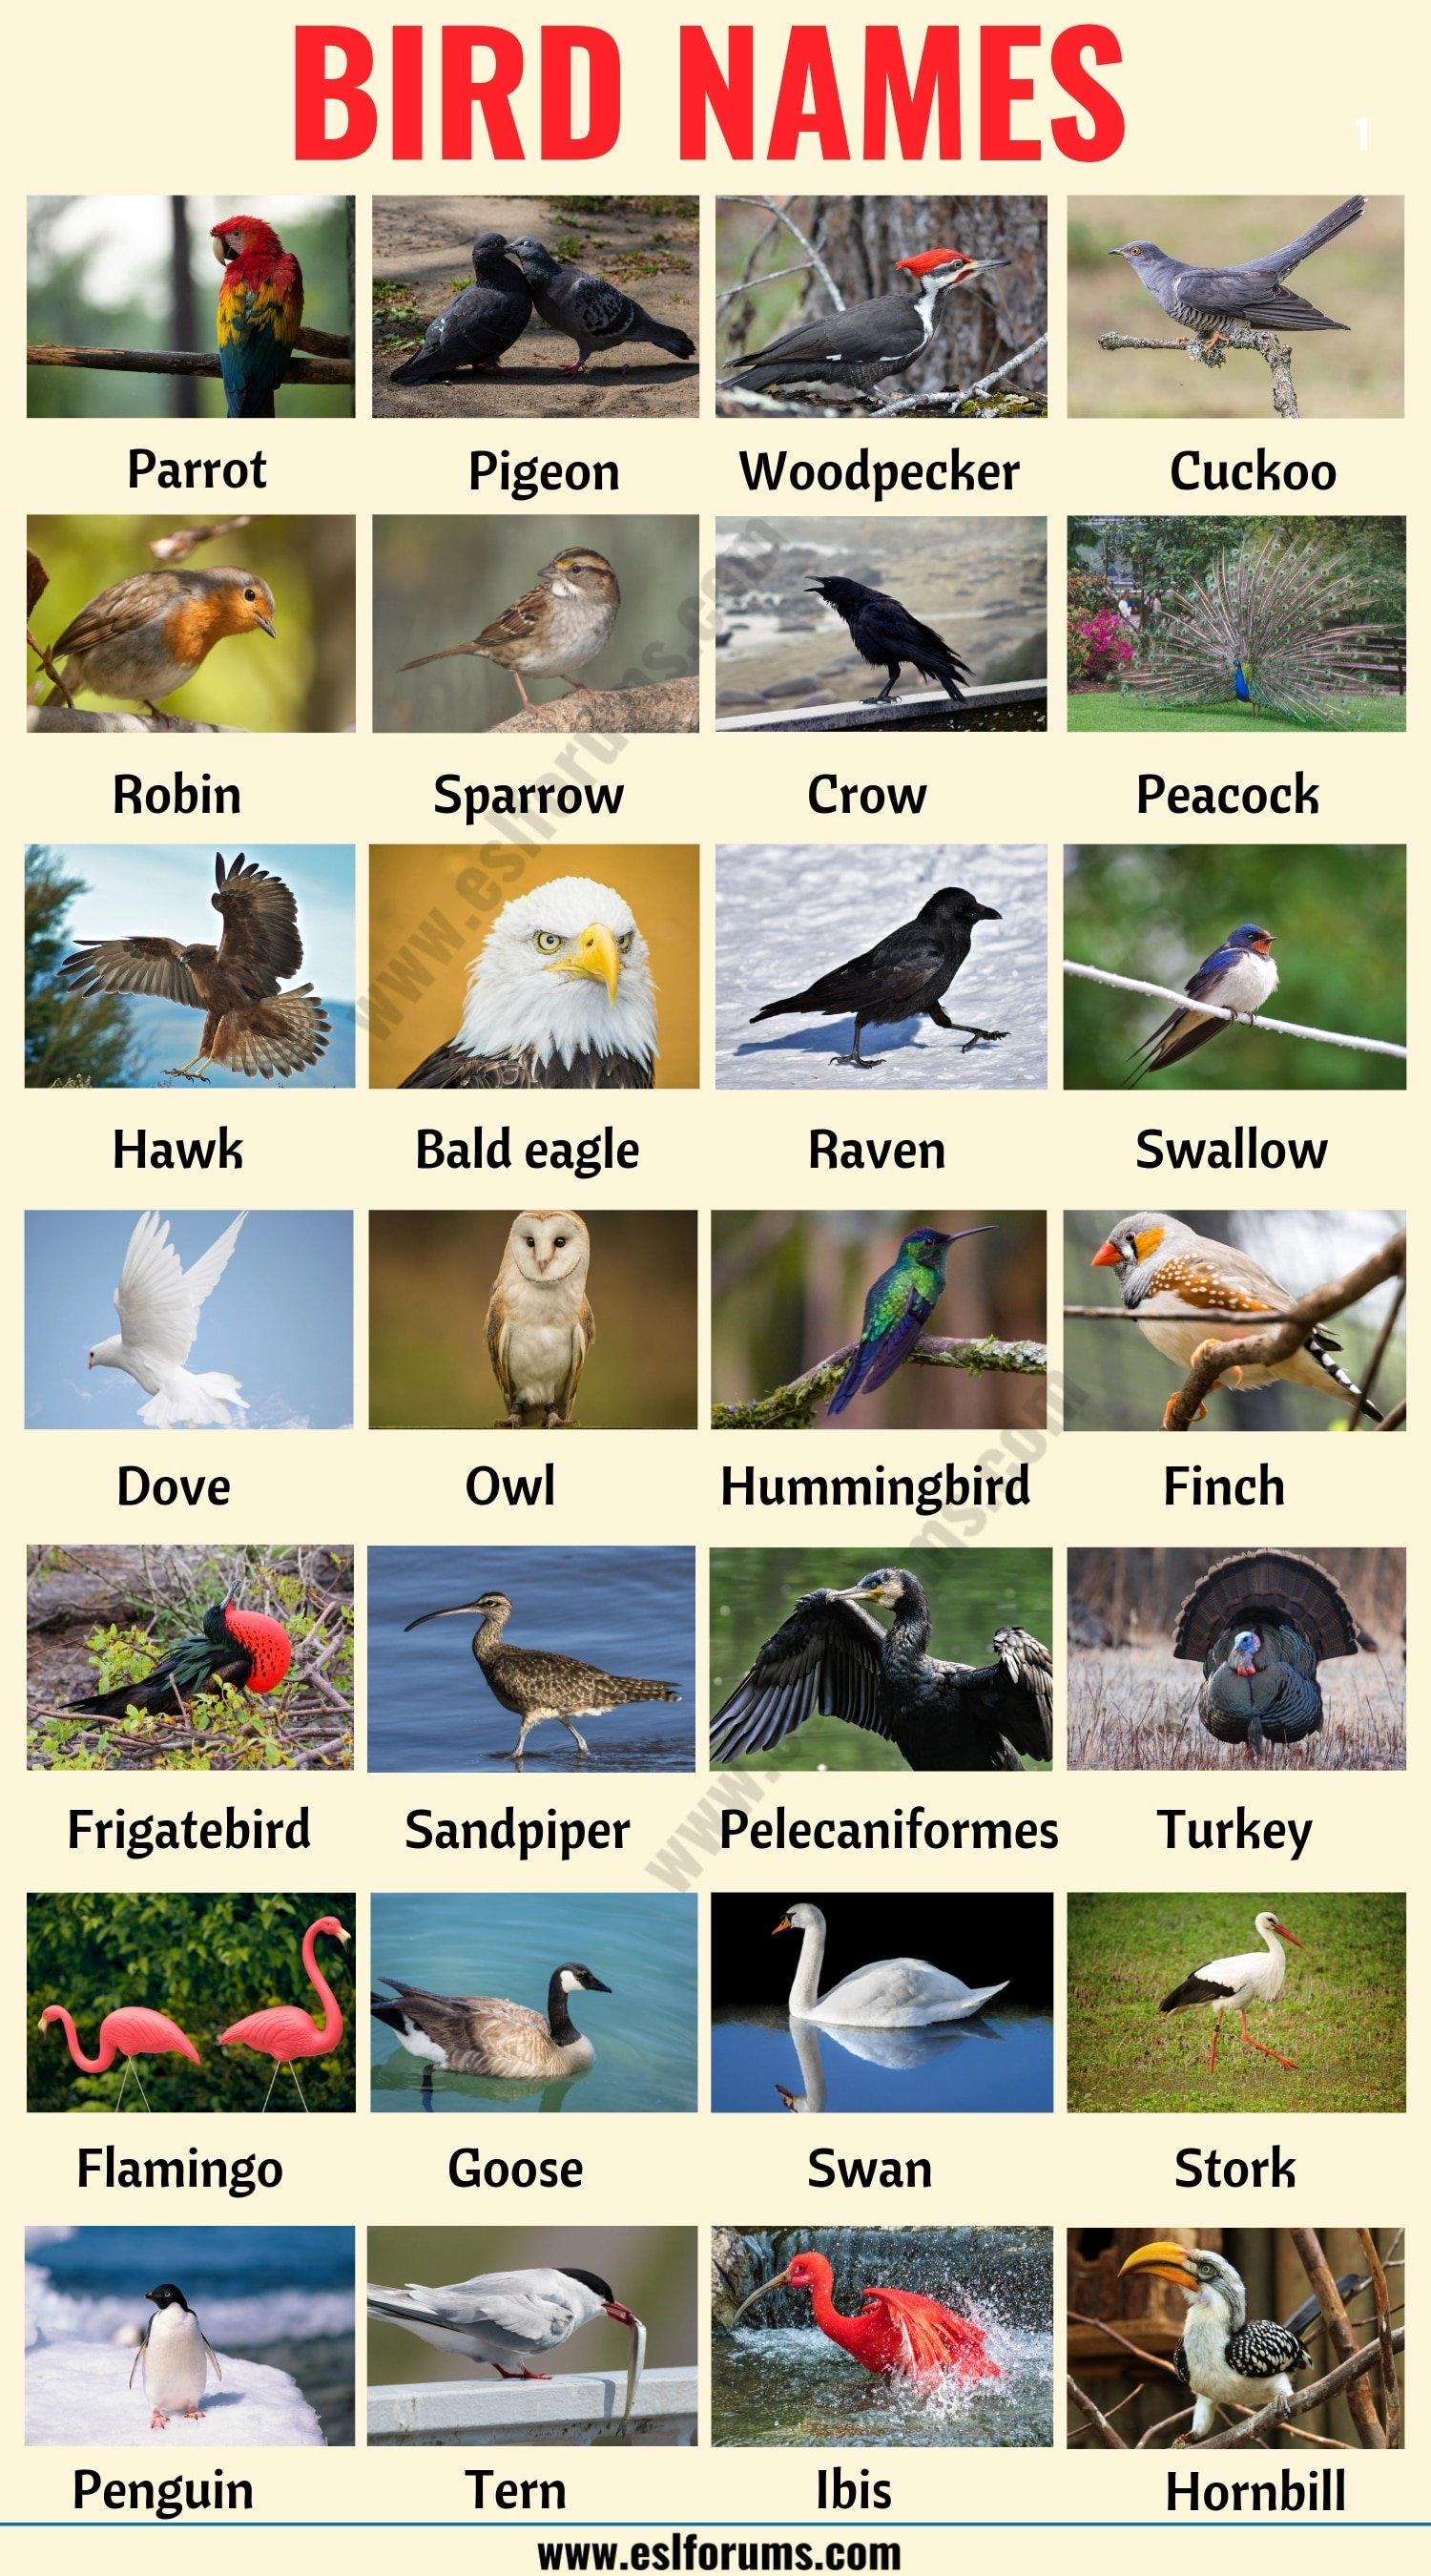 Bird Names: Different Types of Birds in English with the Picture